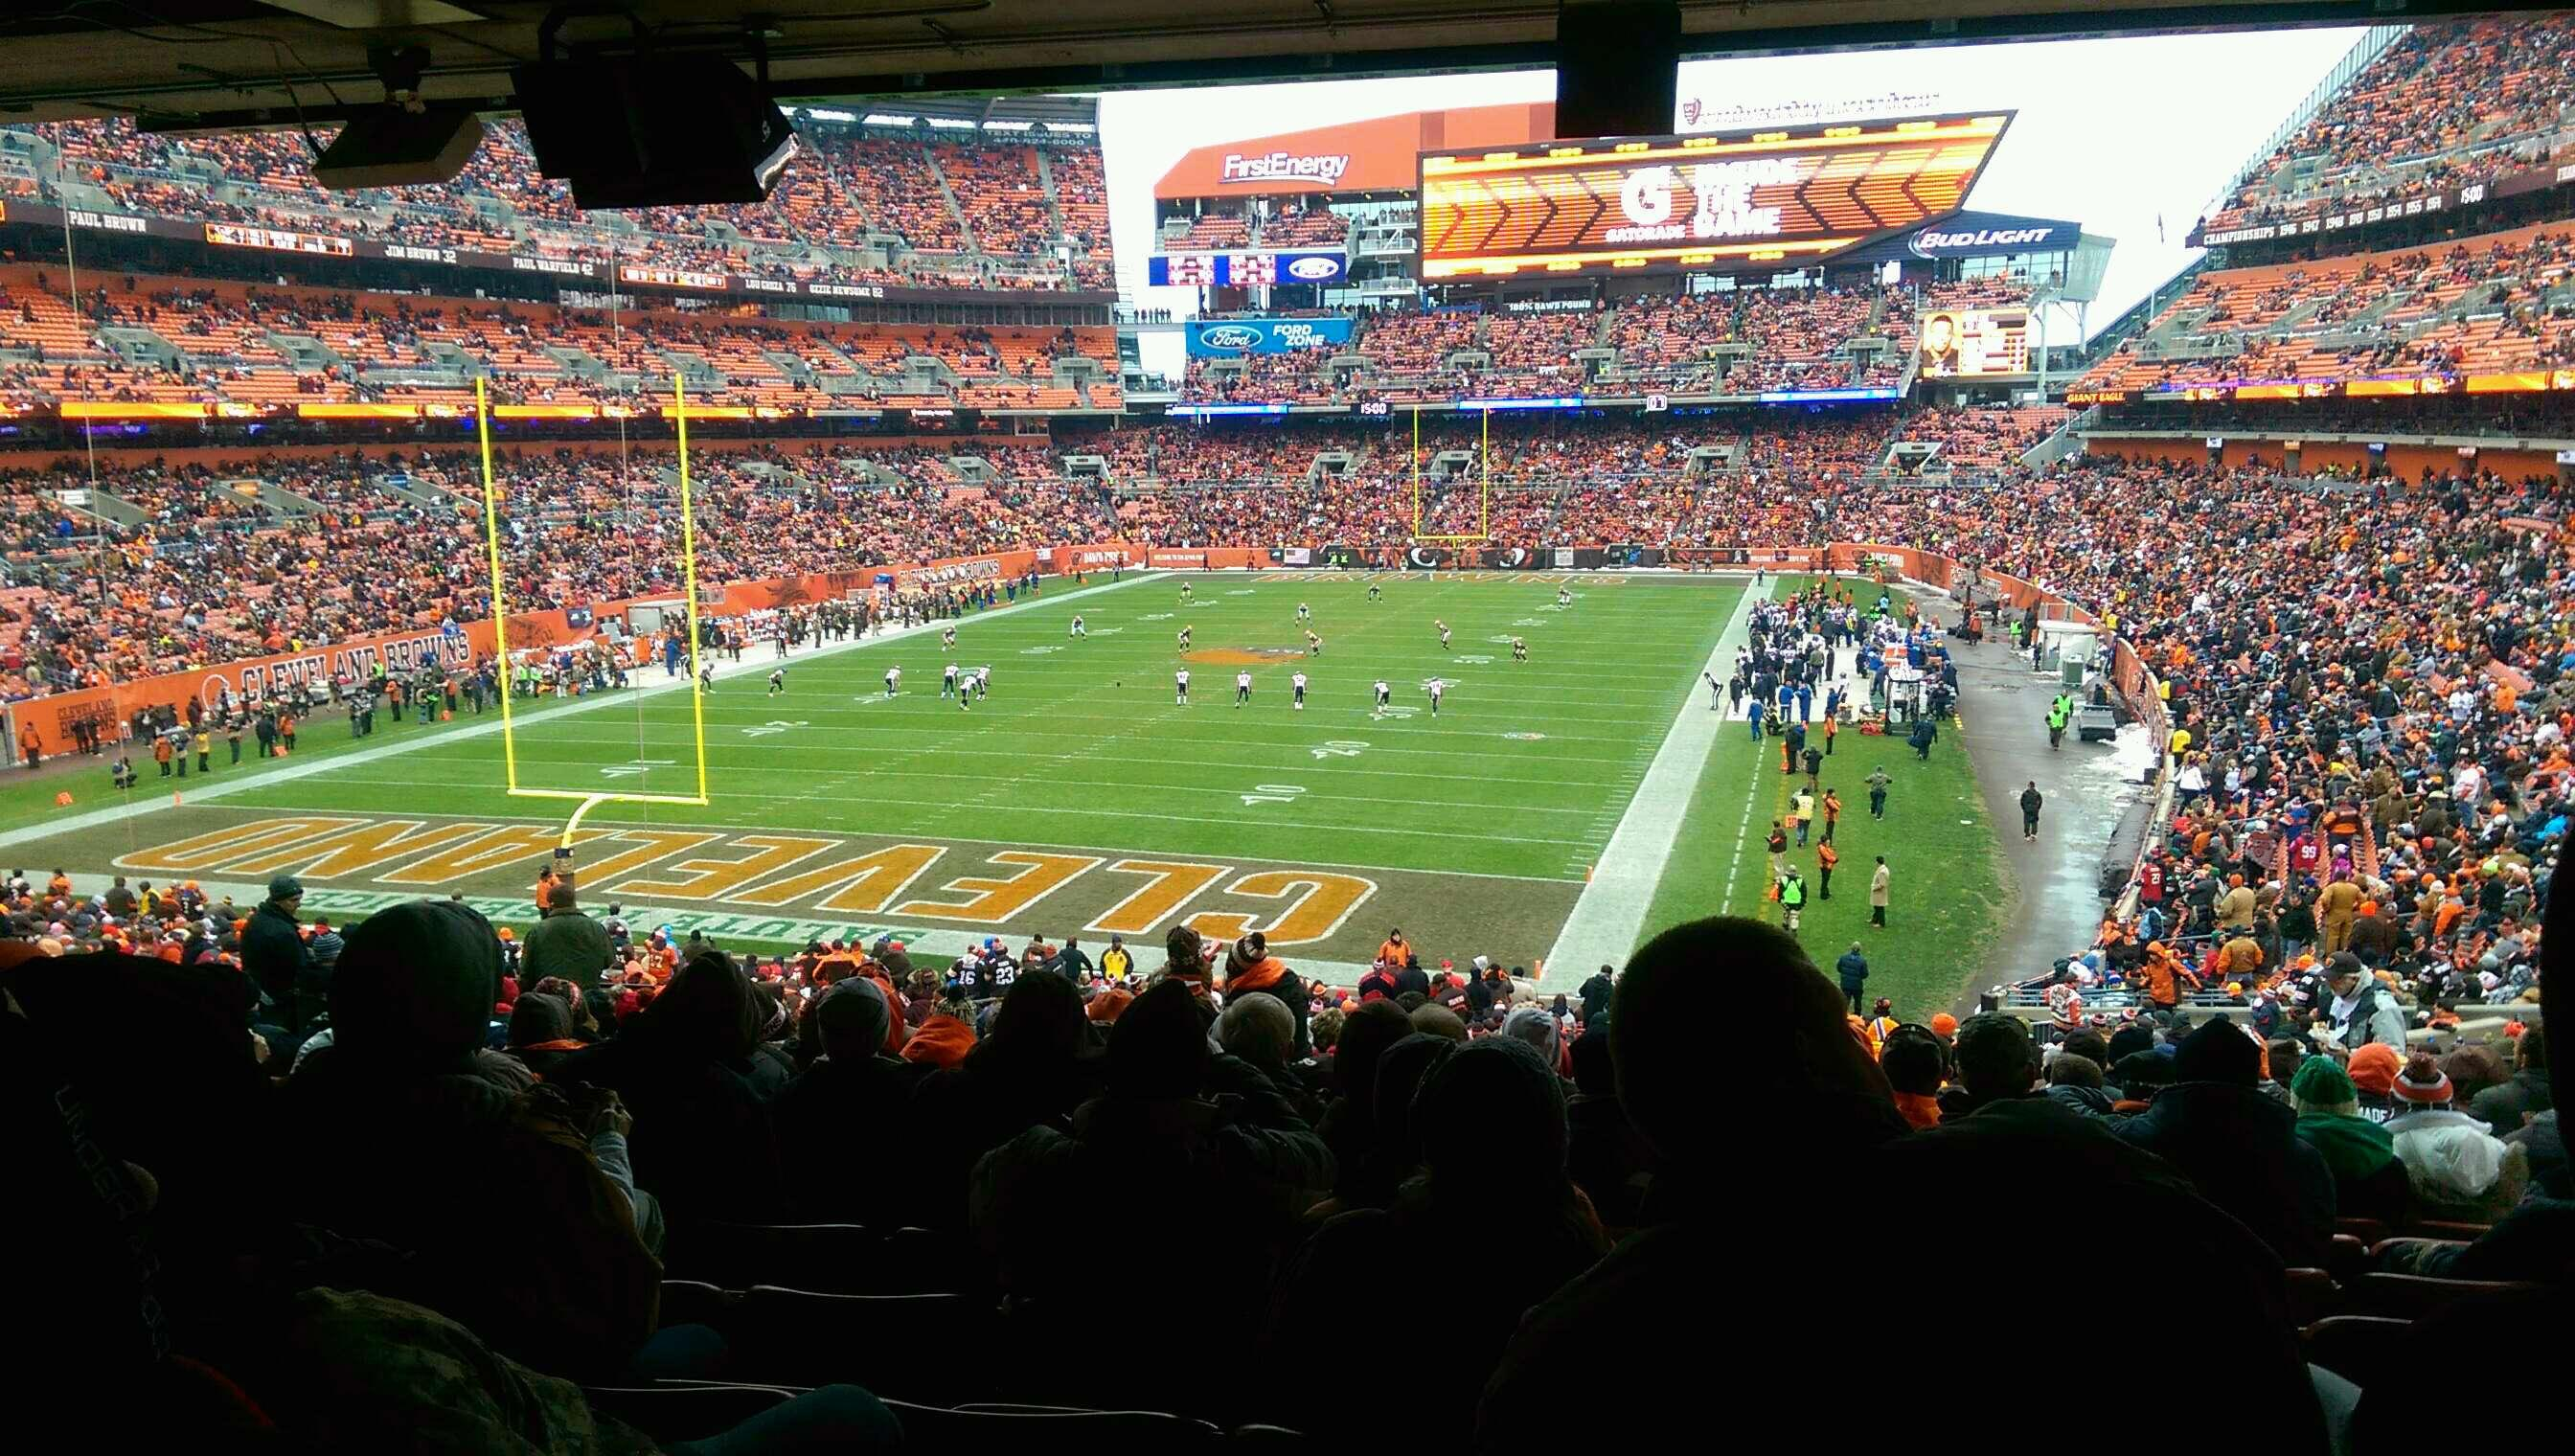 FirstEnergy Stadium Section 149 Row 38 Seat 17